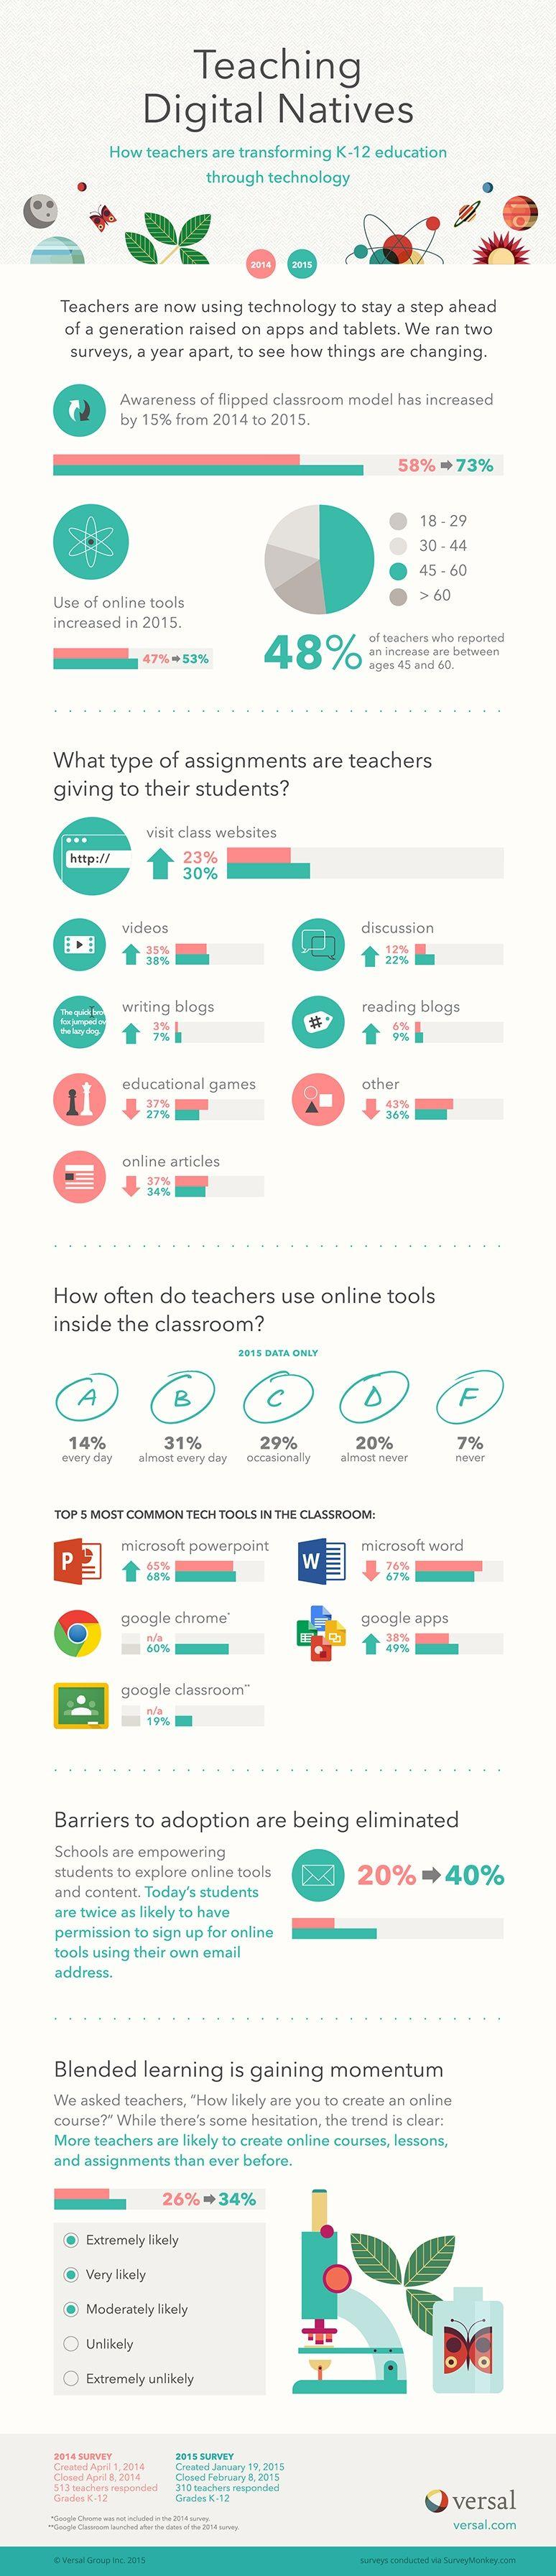 teachers use of technology in the classroom infographic